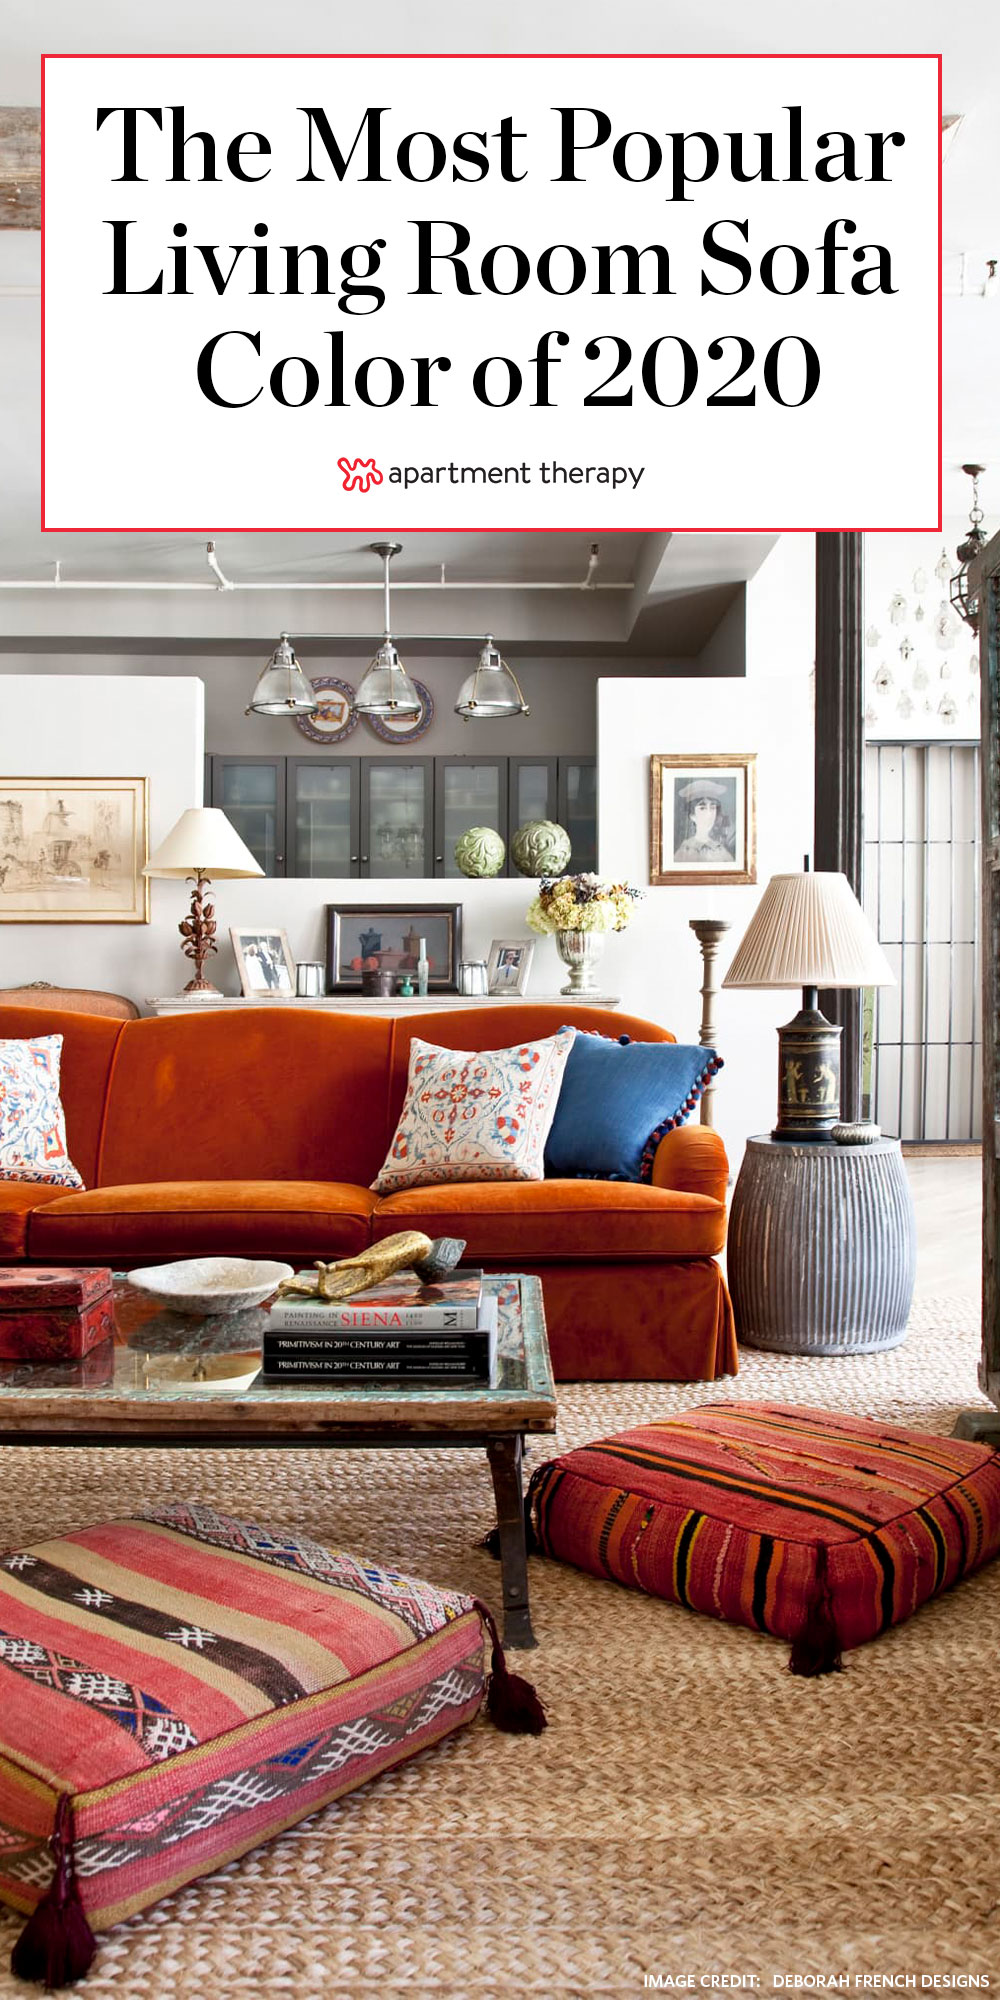 How To Use A Burnt Orange Sofa In Your Living Room Apartment Therapy